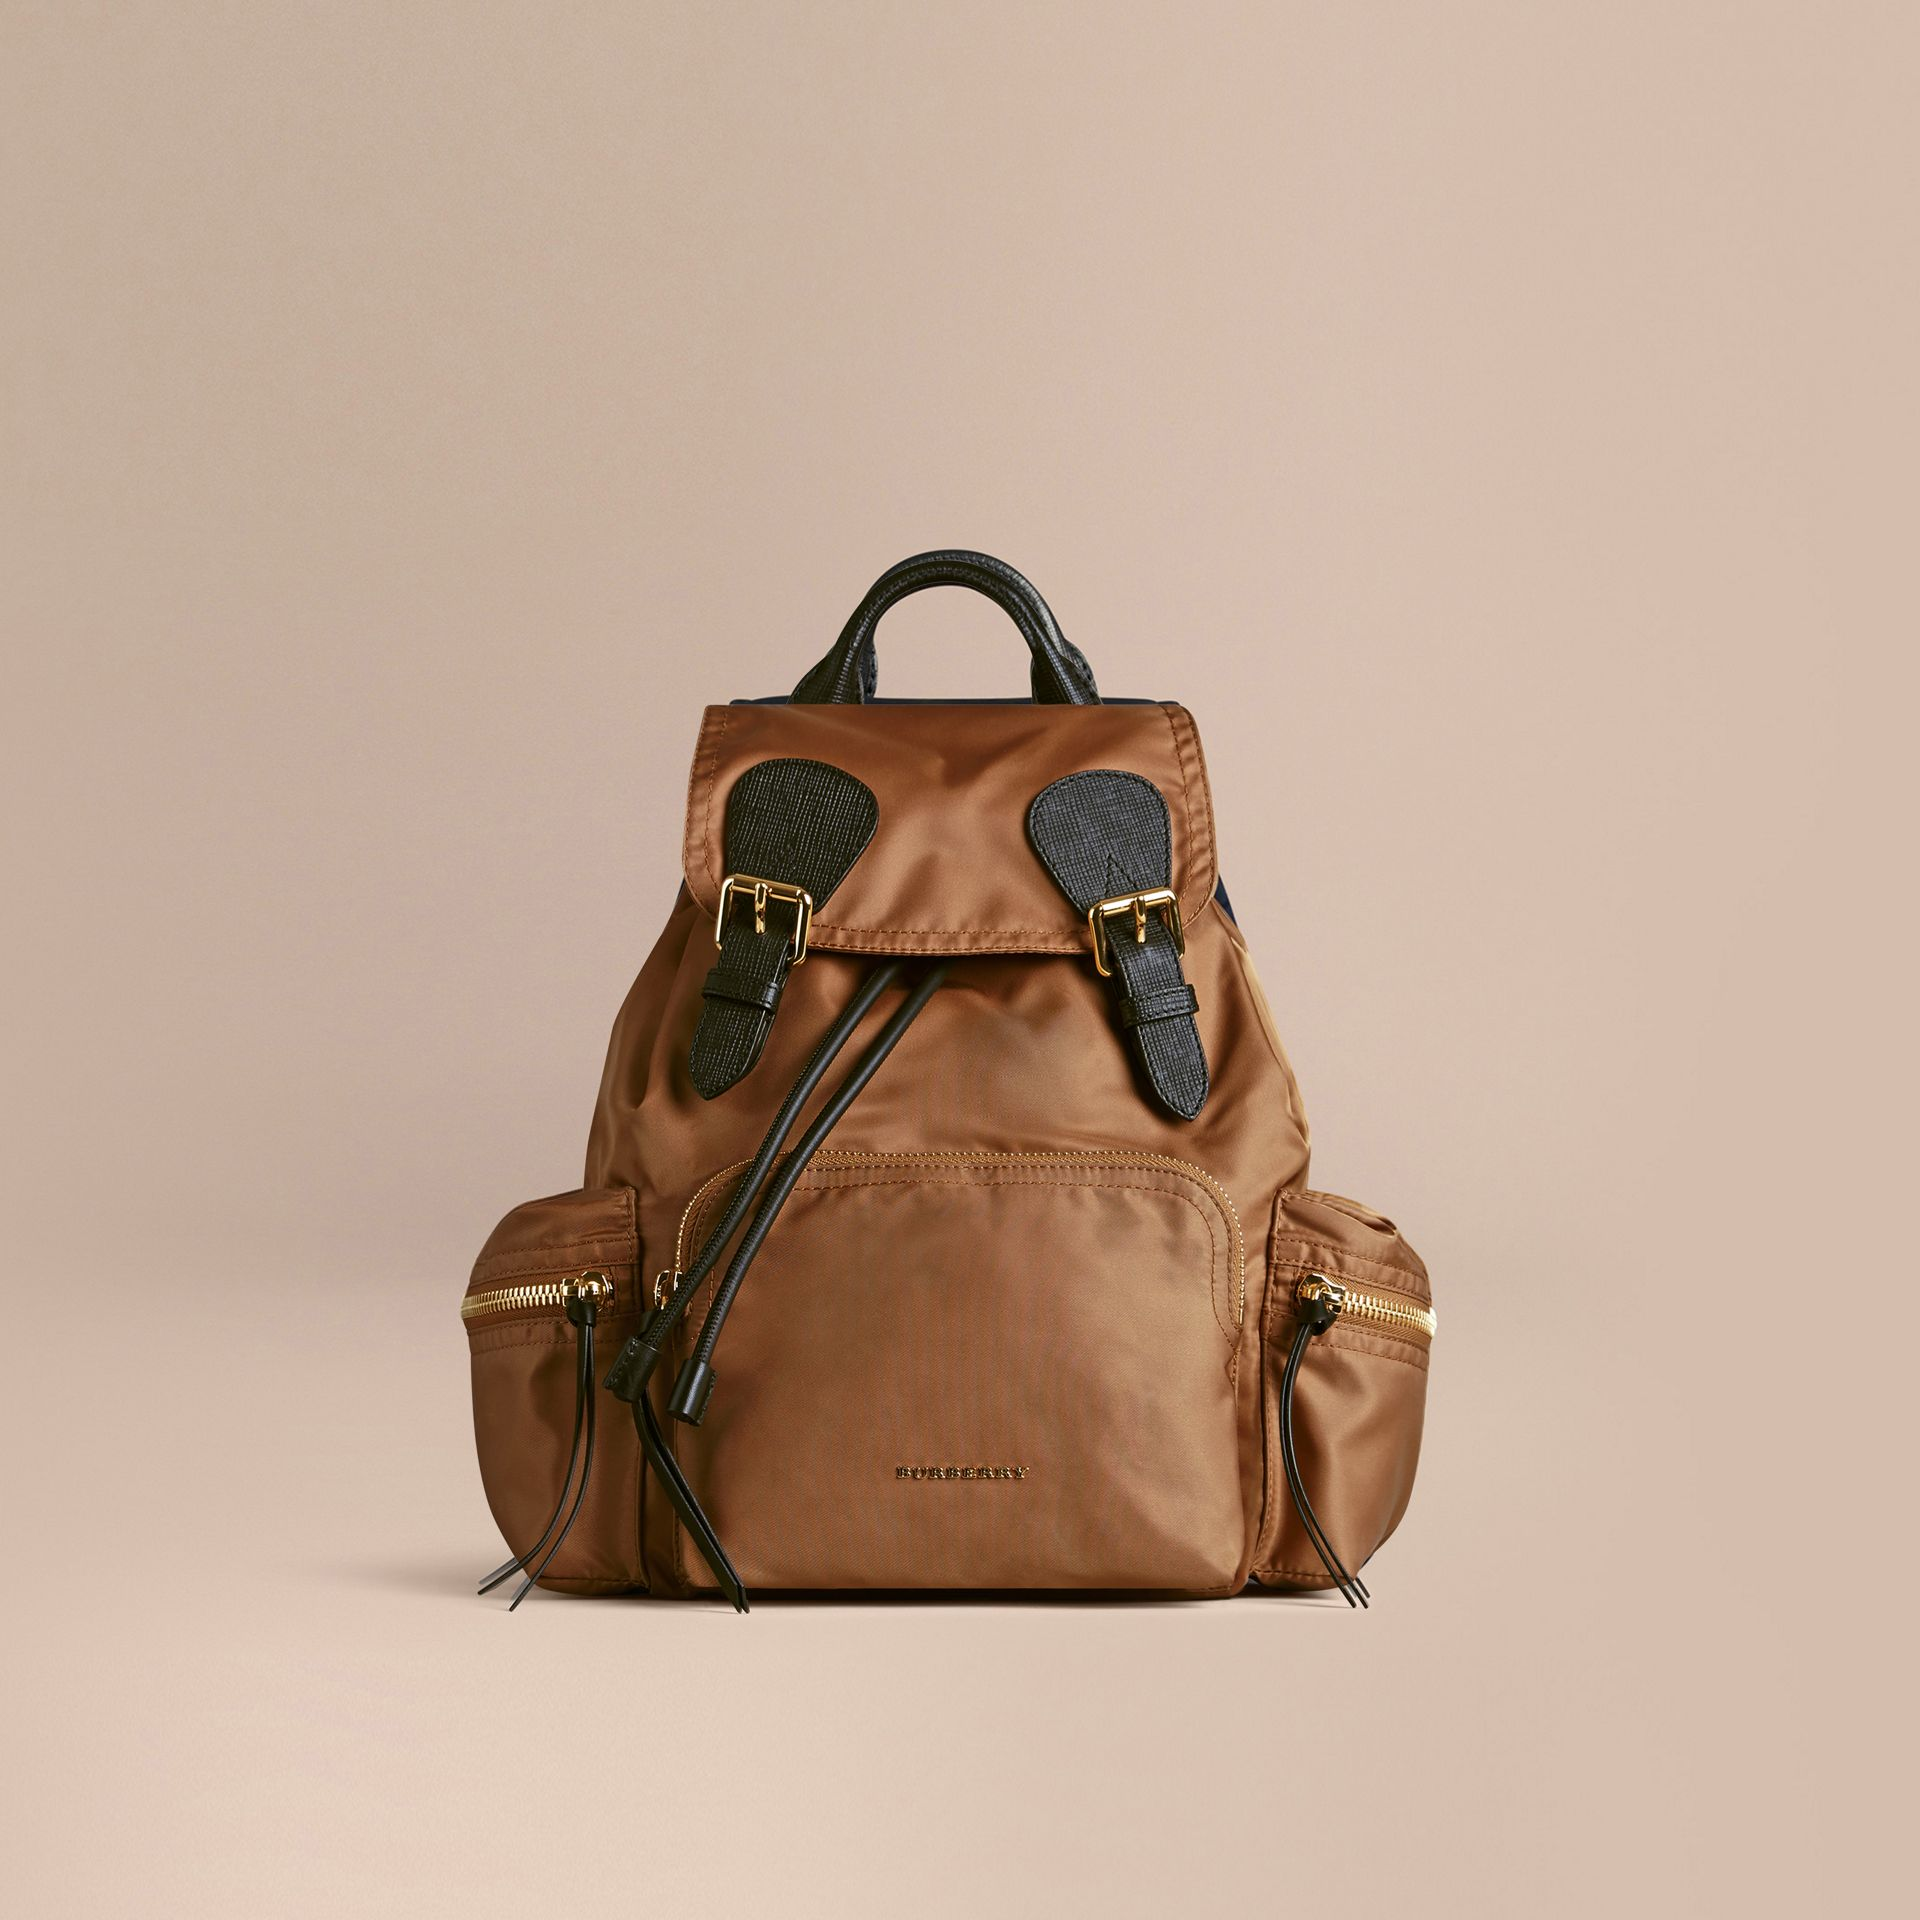 Sac The Rucksack medium en nylon technique et cuir (Lin Clair) - Femme | Burberry - photo de la galerie 3